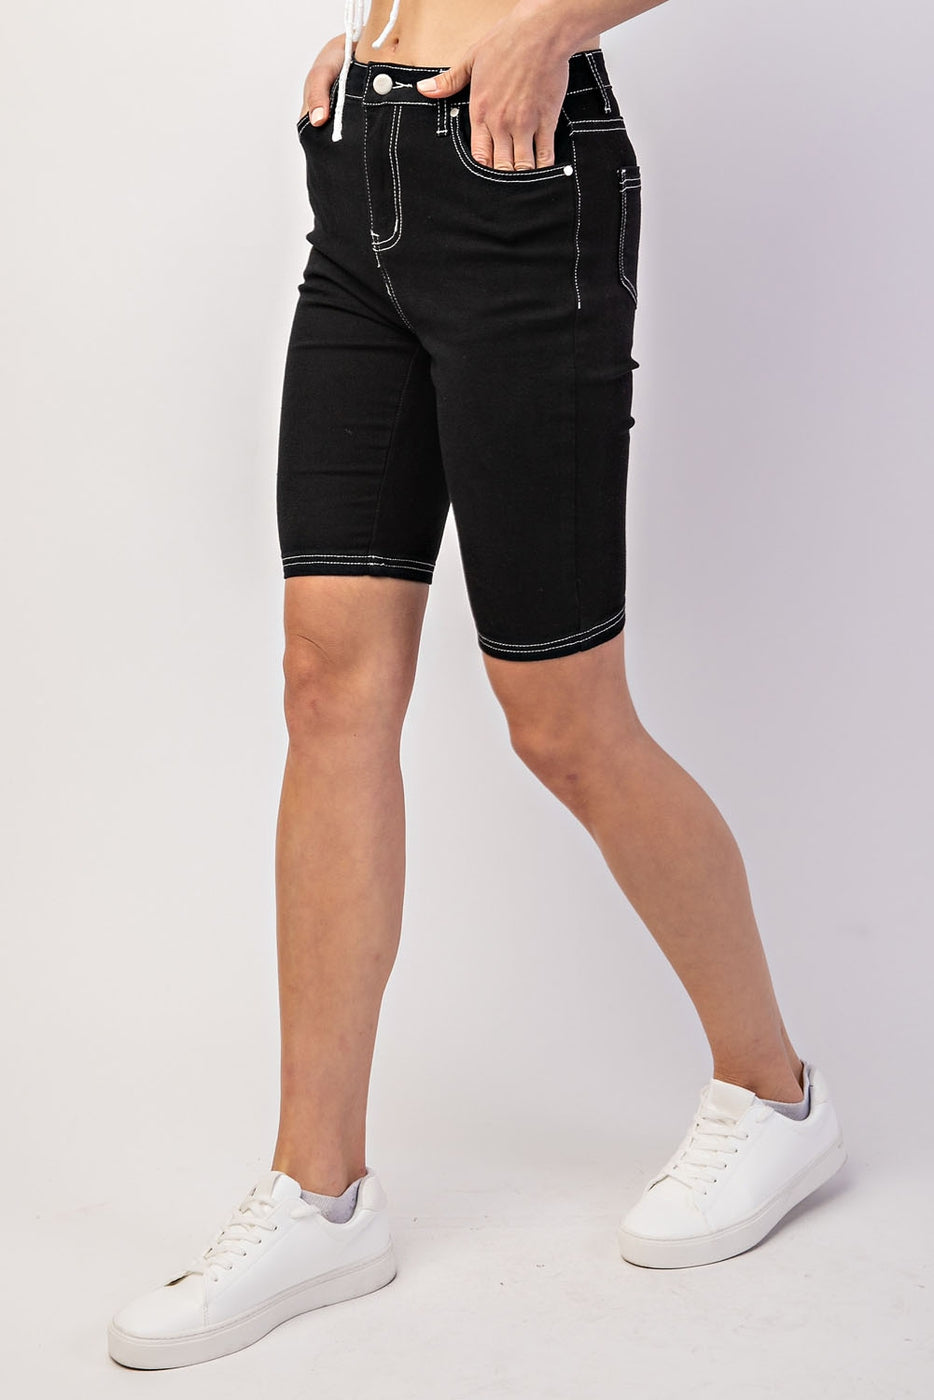 White Contrast Stitch Detail Bike Denim Shorts In Black Siin Bees